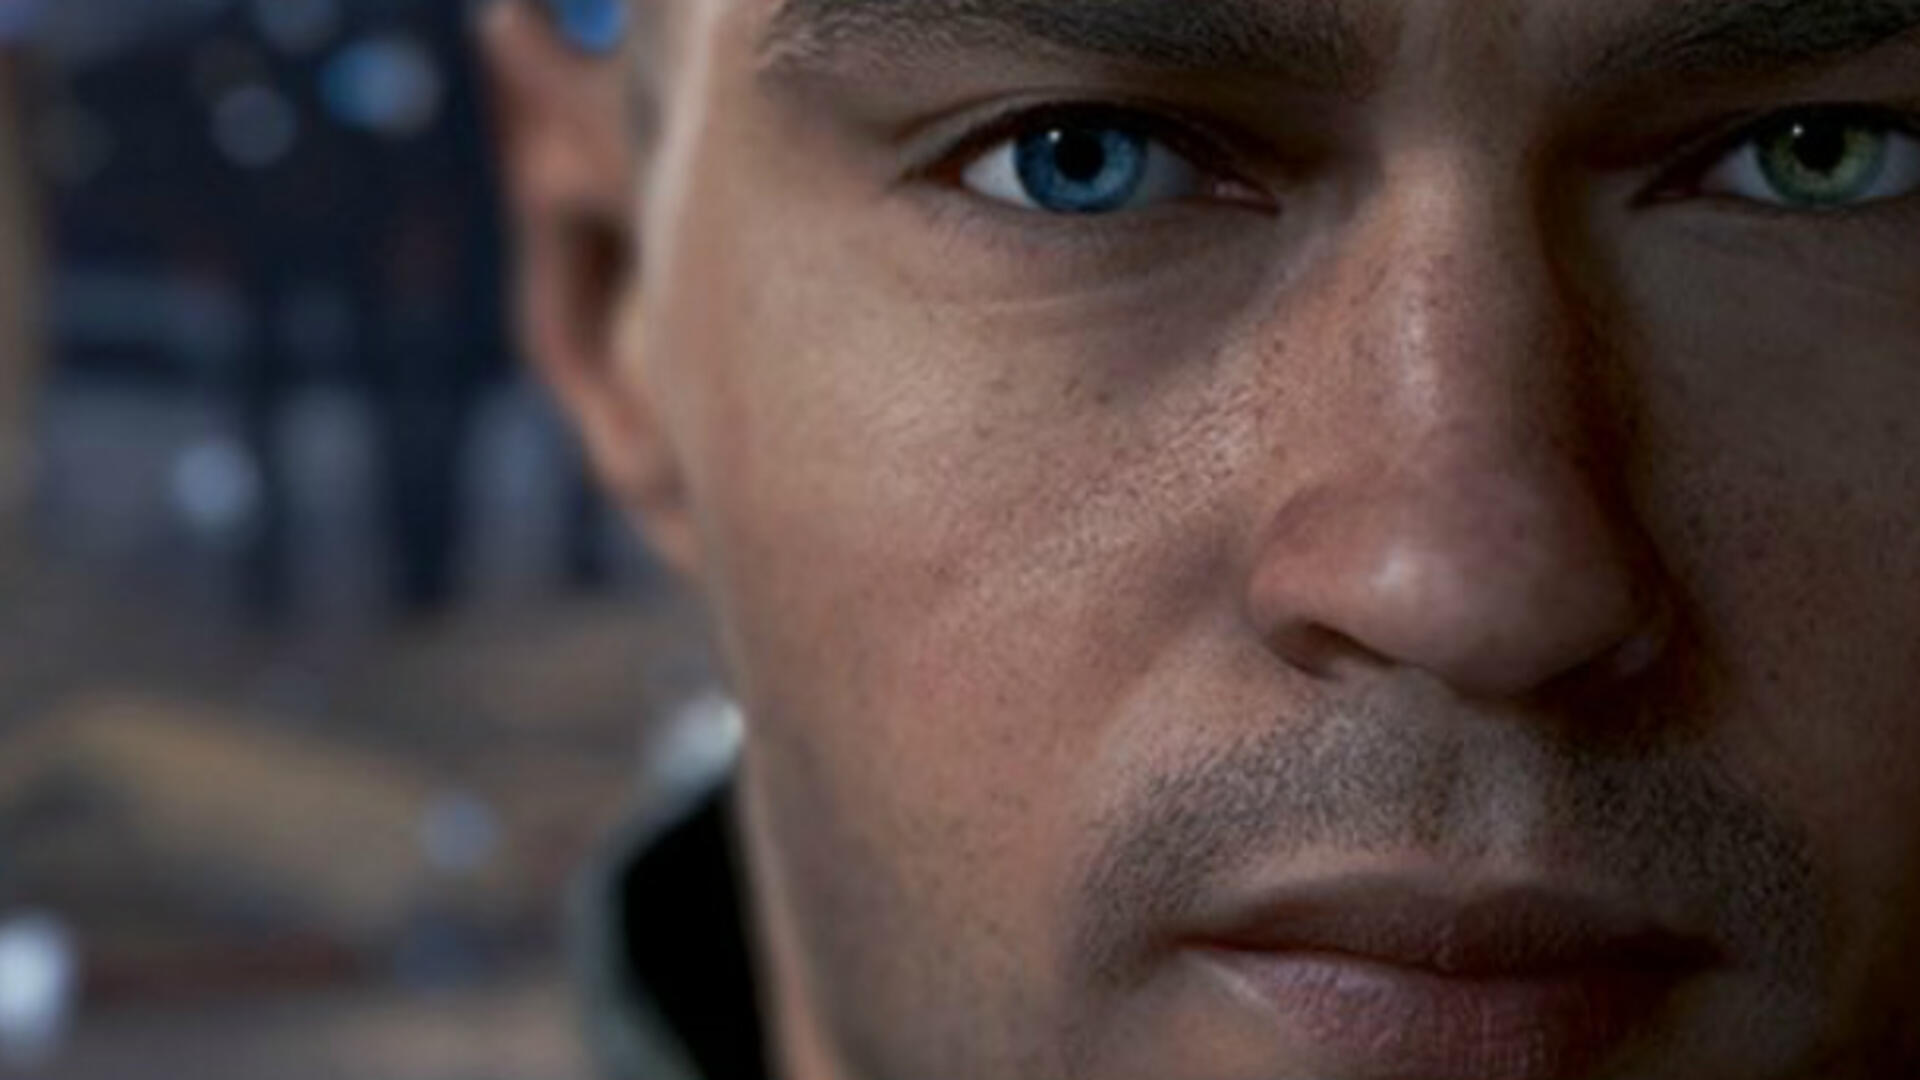 Detroit: Become Human Asks Players To Choose Between Pacifism and Violence